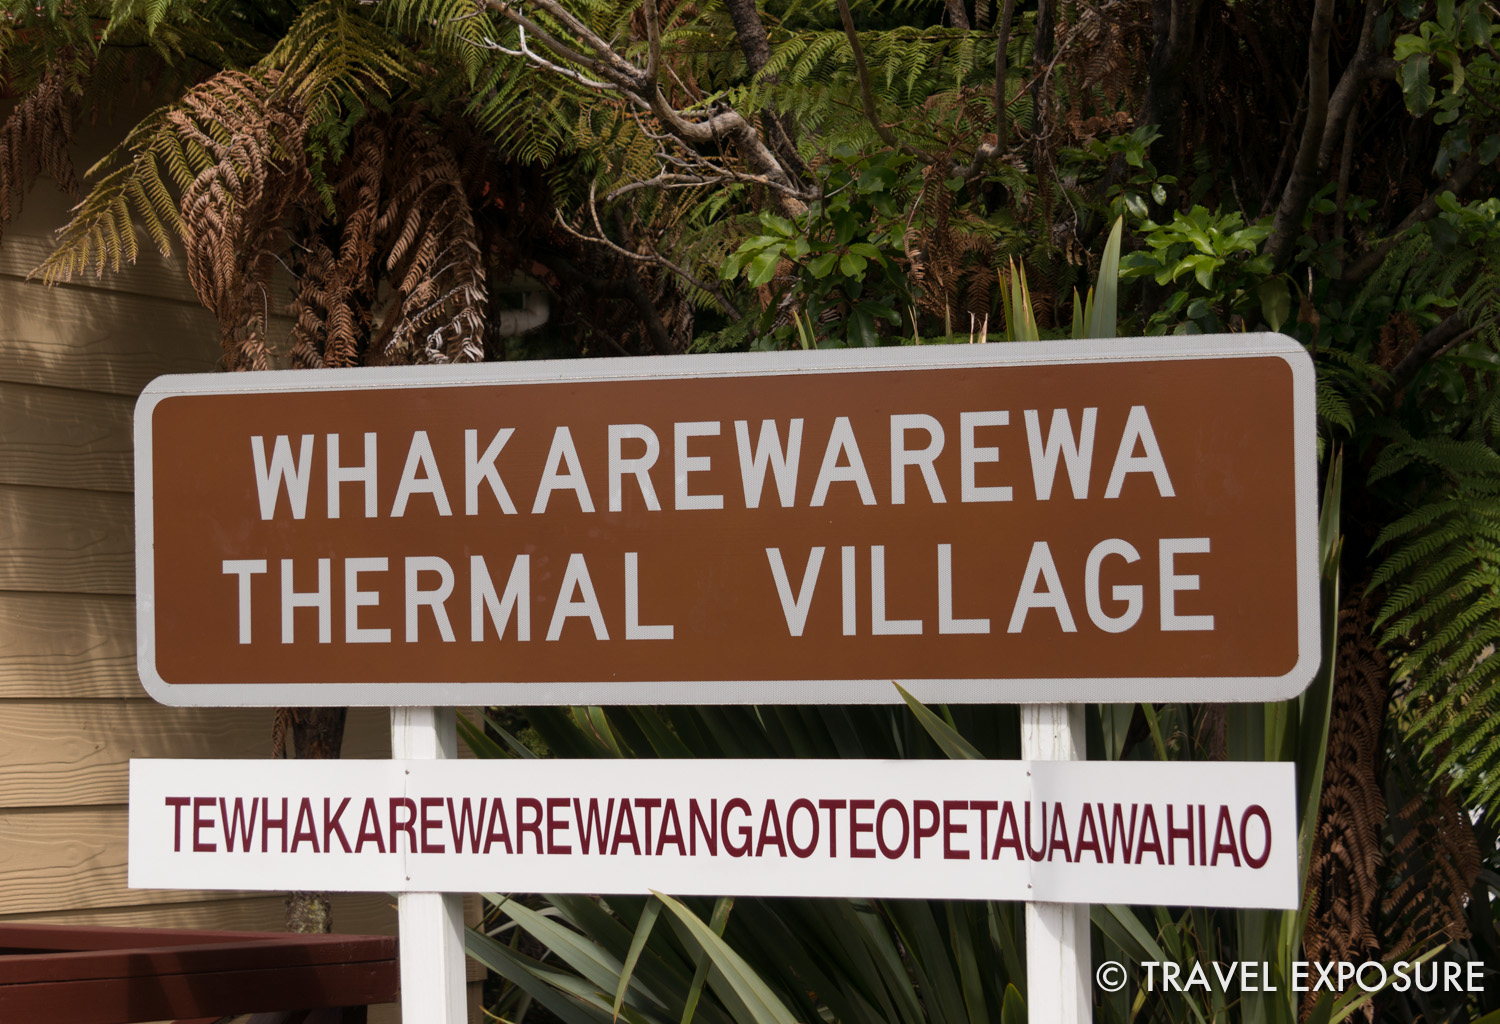 The sign below lists the full Maori name of the village